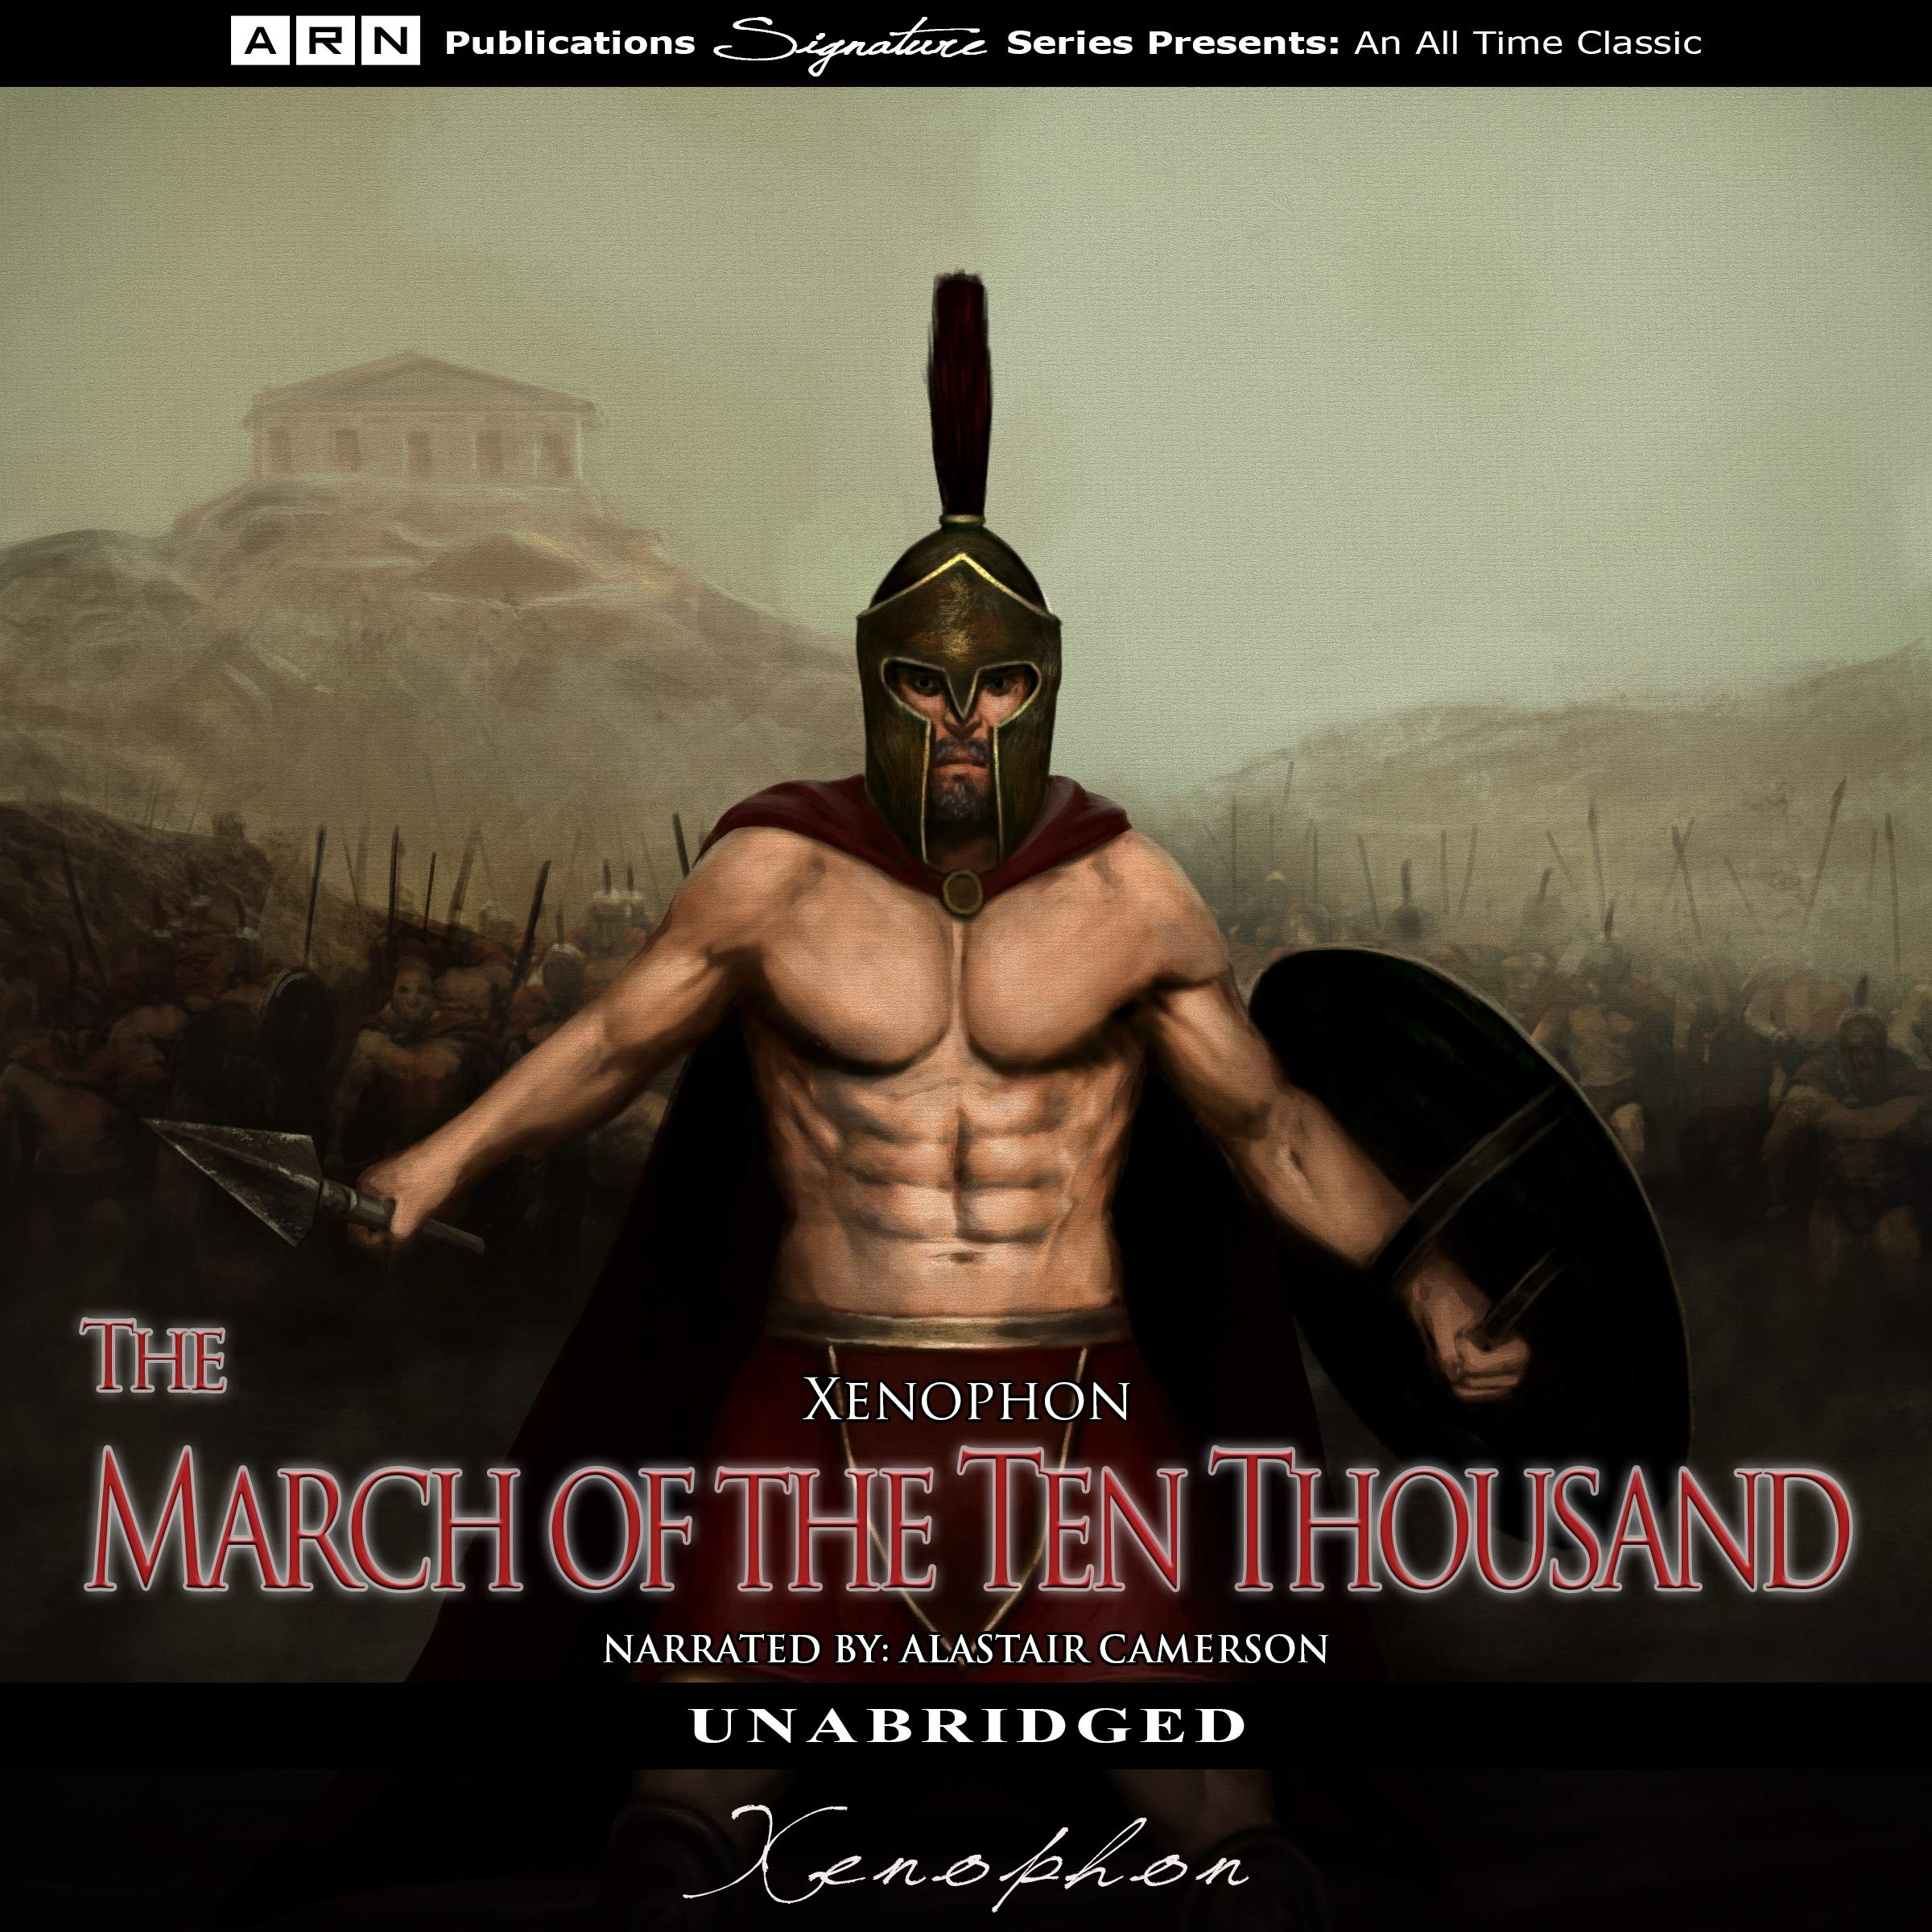 The March of the Ten Thousand